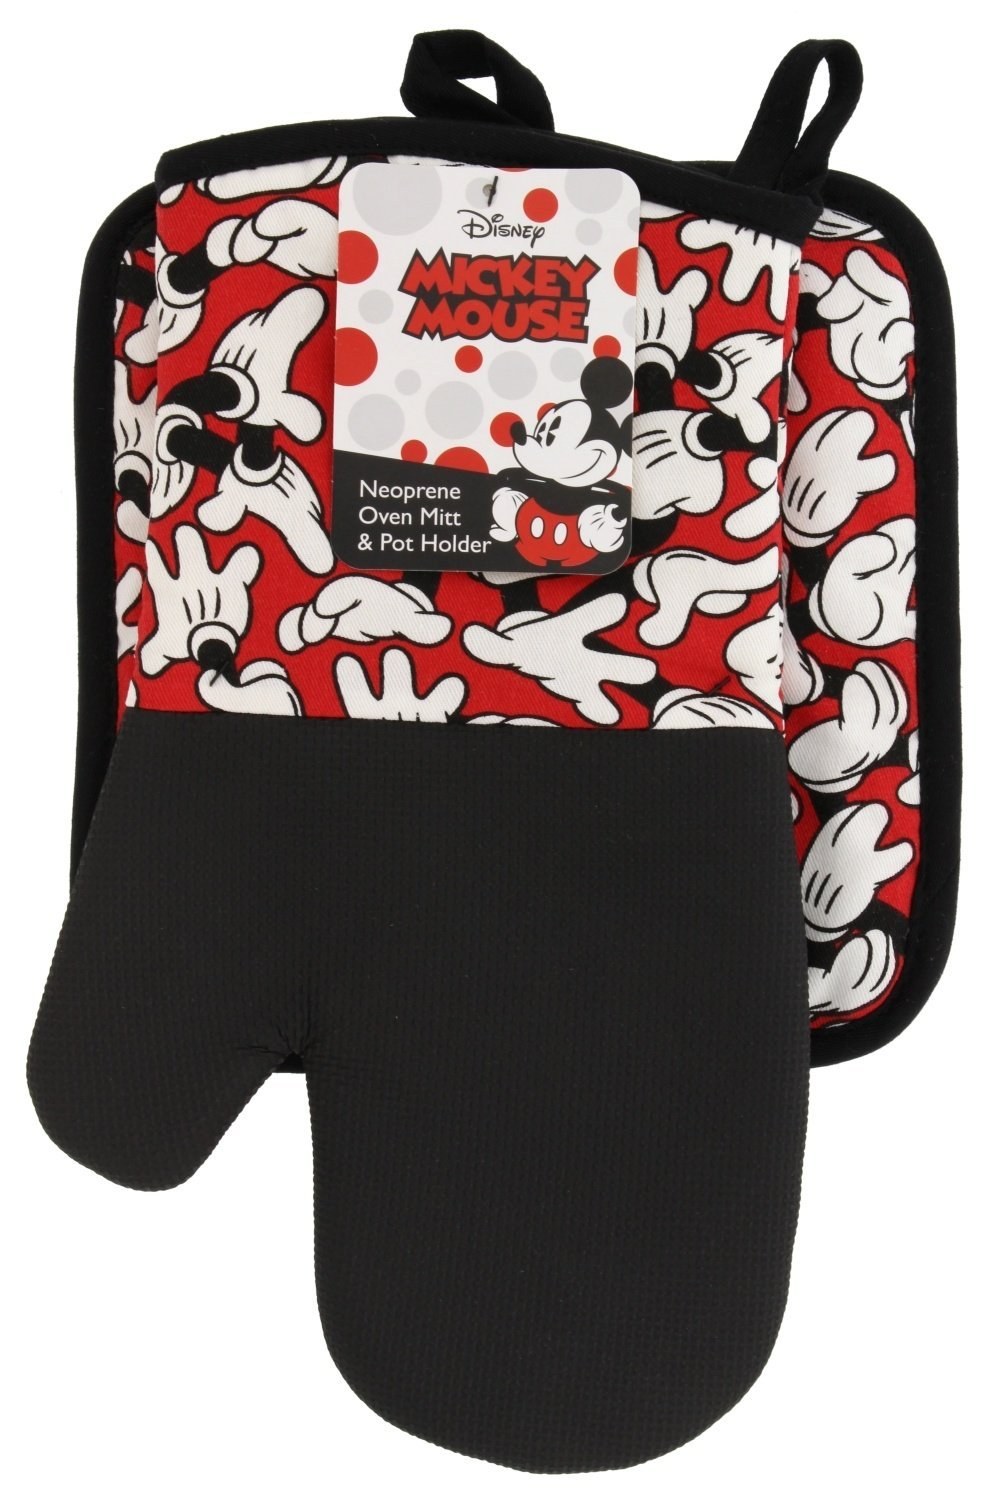 Disney Puppet Oven Mitt & Potholder w/Neoprene for Easy Gripping, Heat Resistant up to 500 degrees F, Mickey Mouse Glove, Red